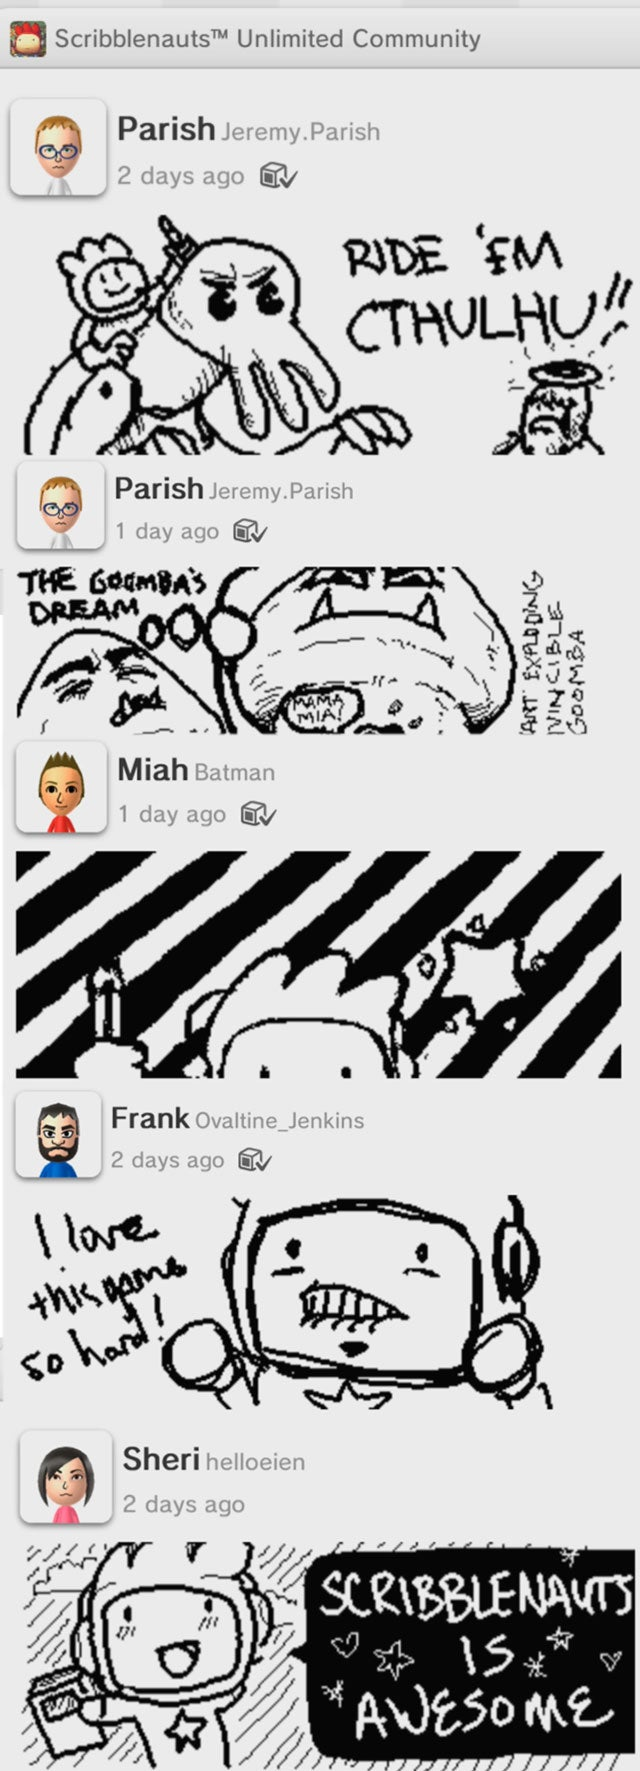 The Best Things We've Found In the Wii U's Miiverse